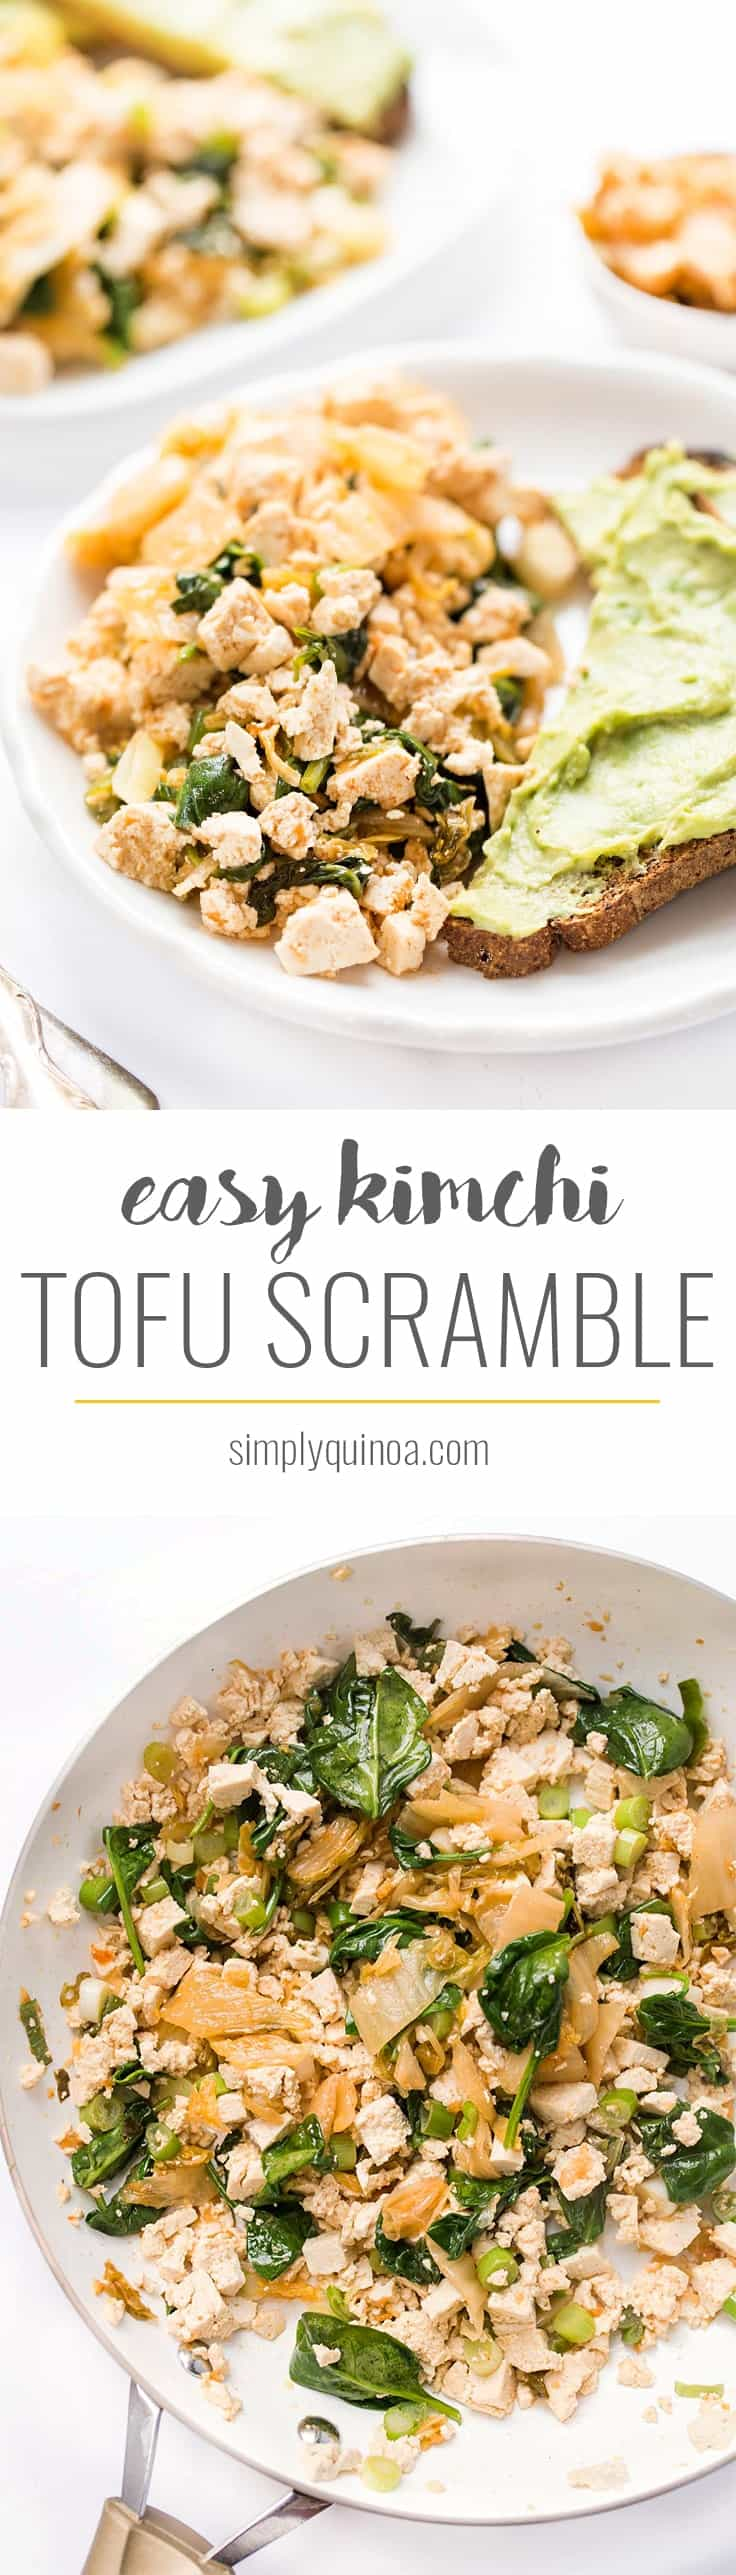 This KIMCHI TOFU SCRAMBLE is a protein-packed, plant-based breakfast that takes just 5 minutes to make and is a wonderful alternative to scrambled eggs!